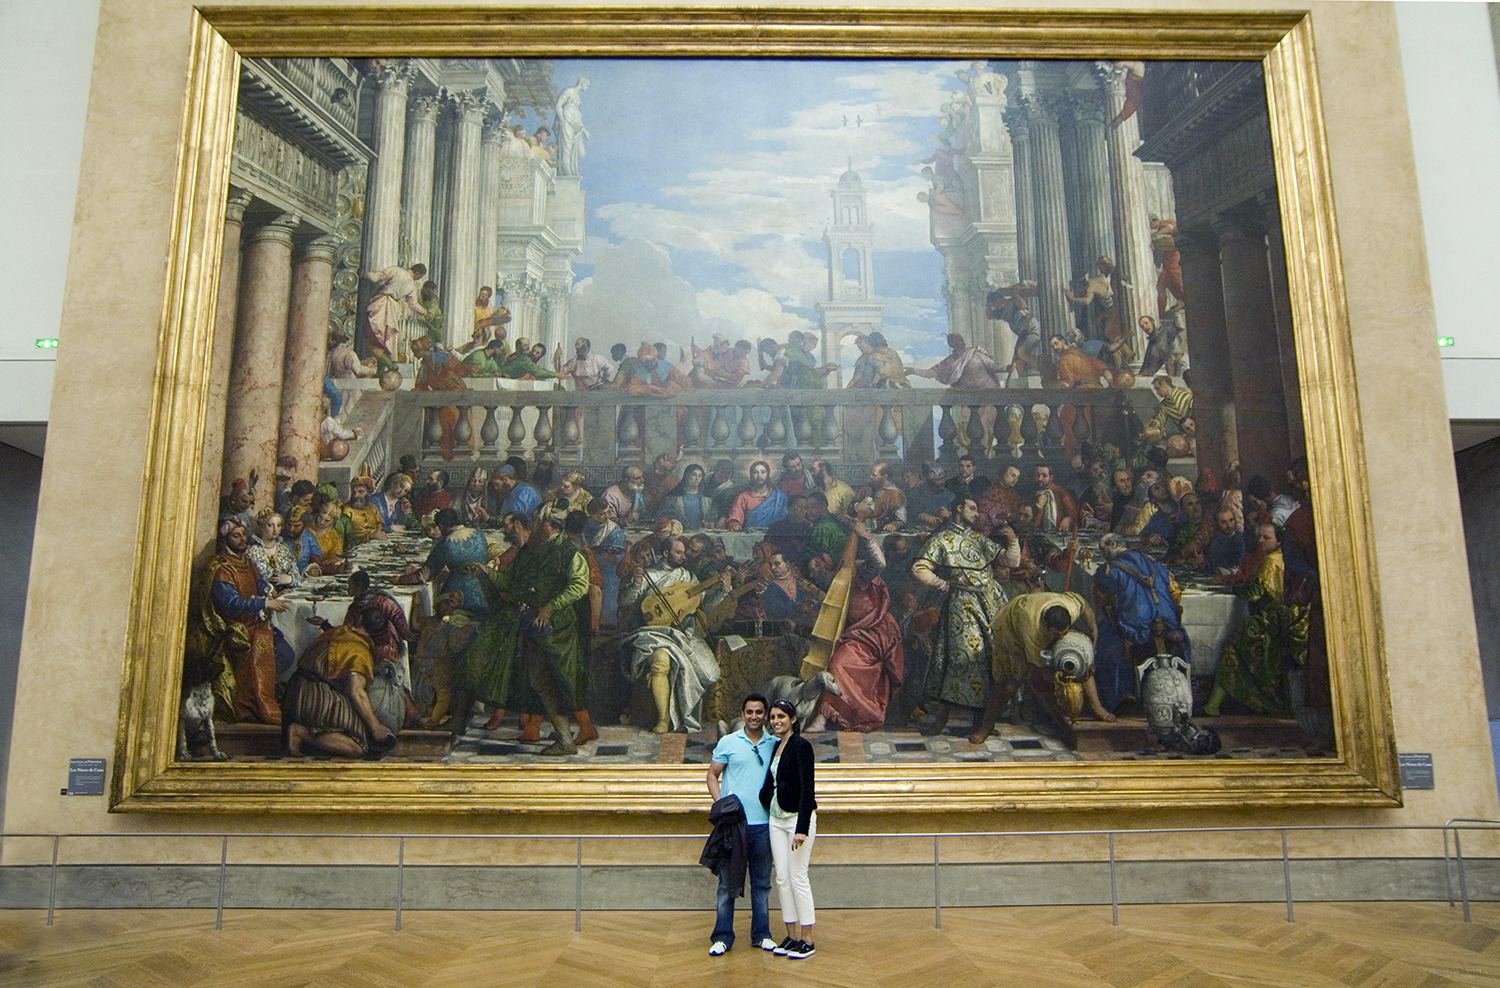 """France / Paris / Louvre / Couple posing  in front of the painting """"The Wedding Feast at Cana"""", inside the """"Mona Lisa room"""""""